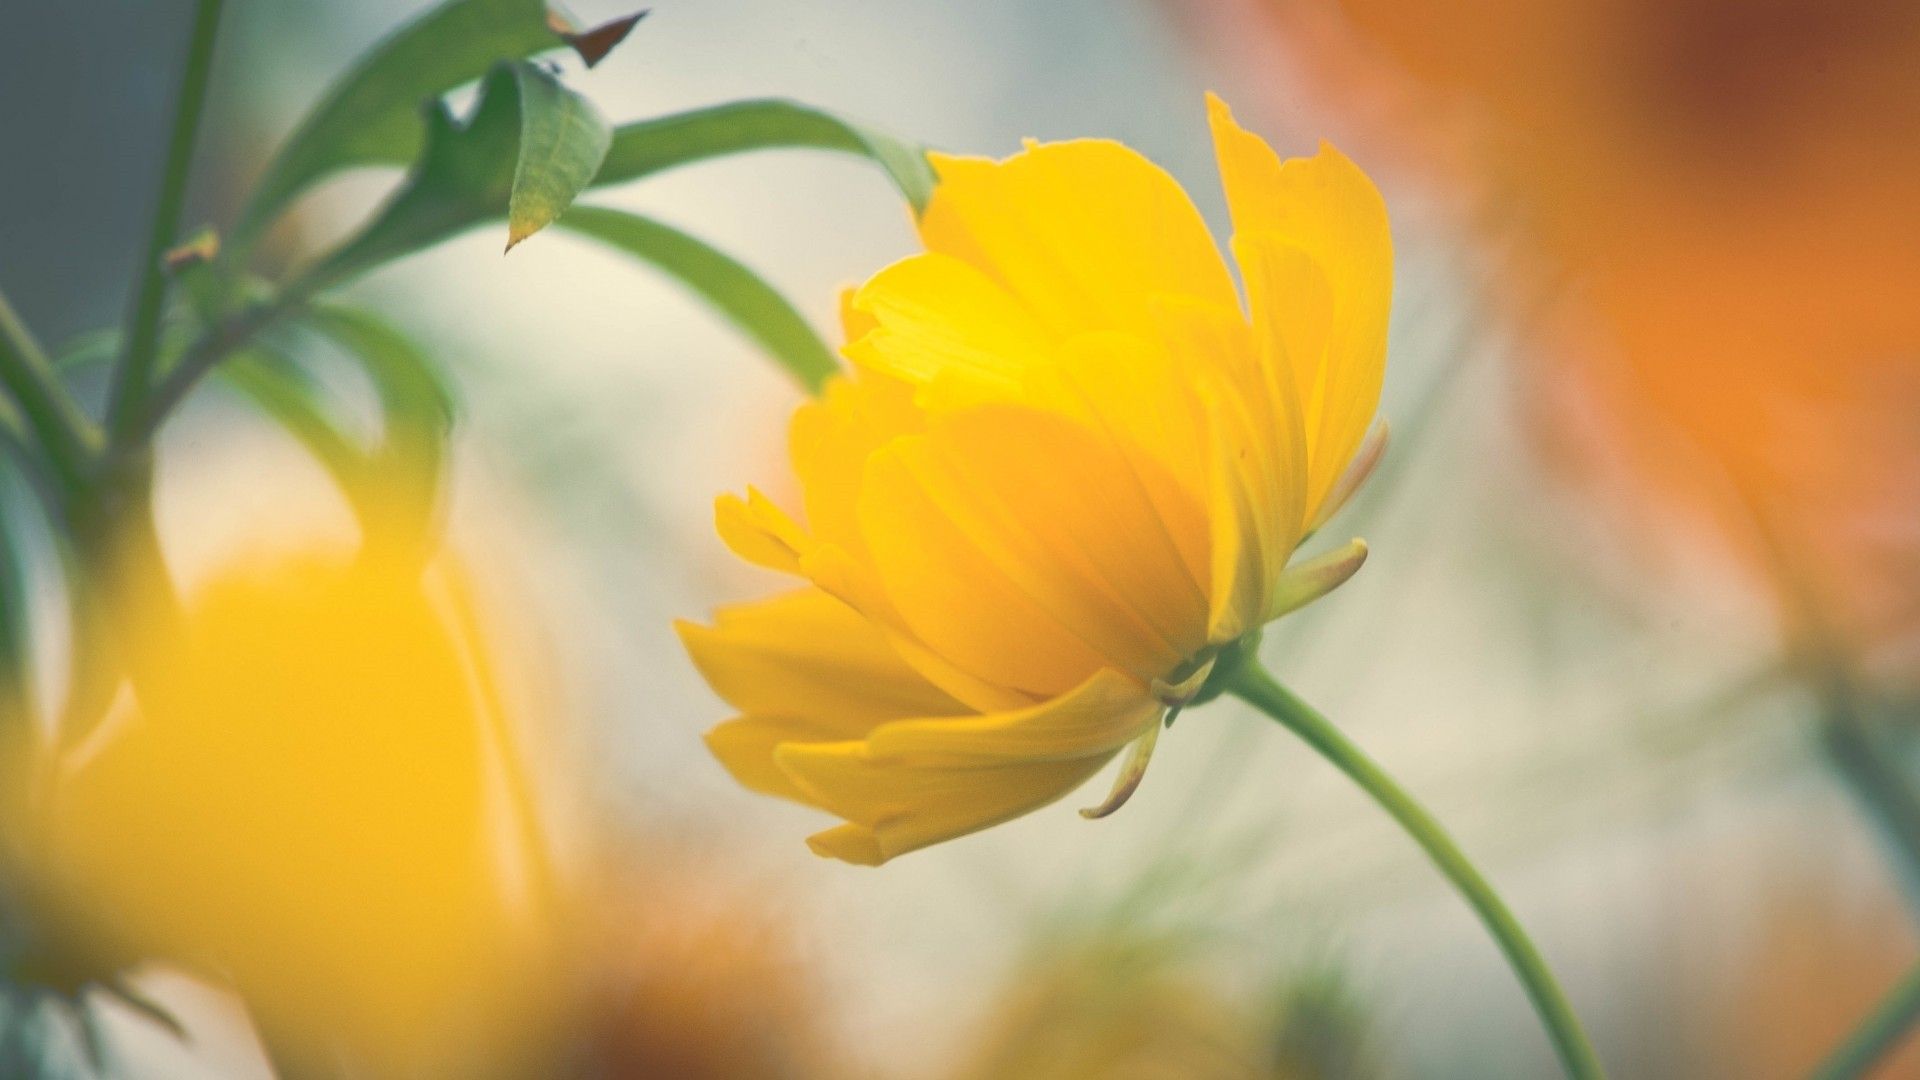 Yellow Flower Wallpaper image hd